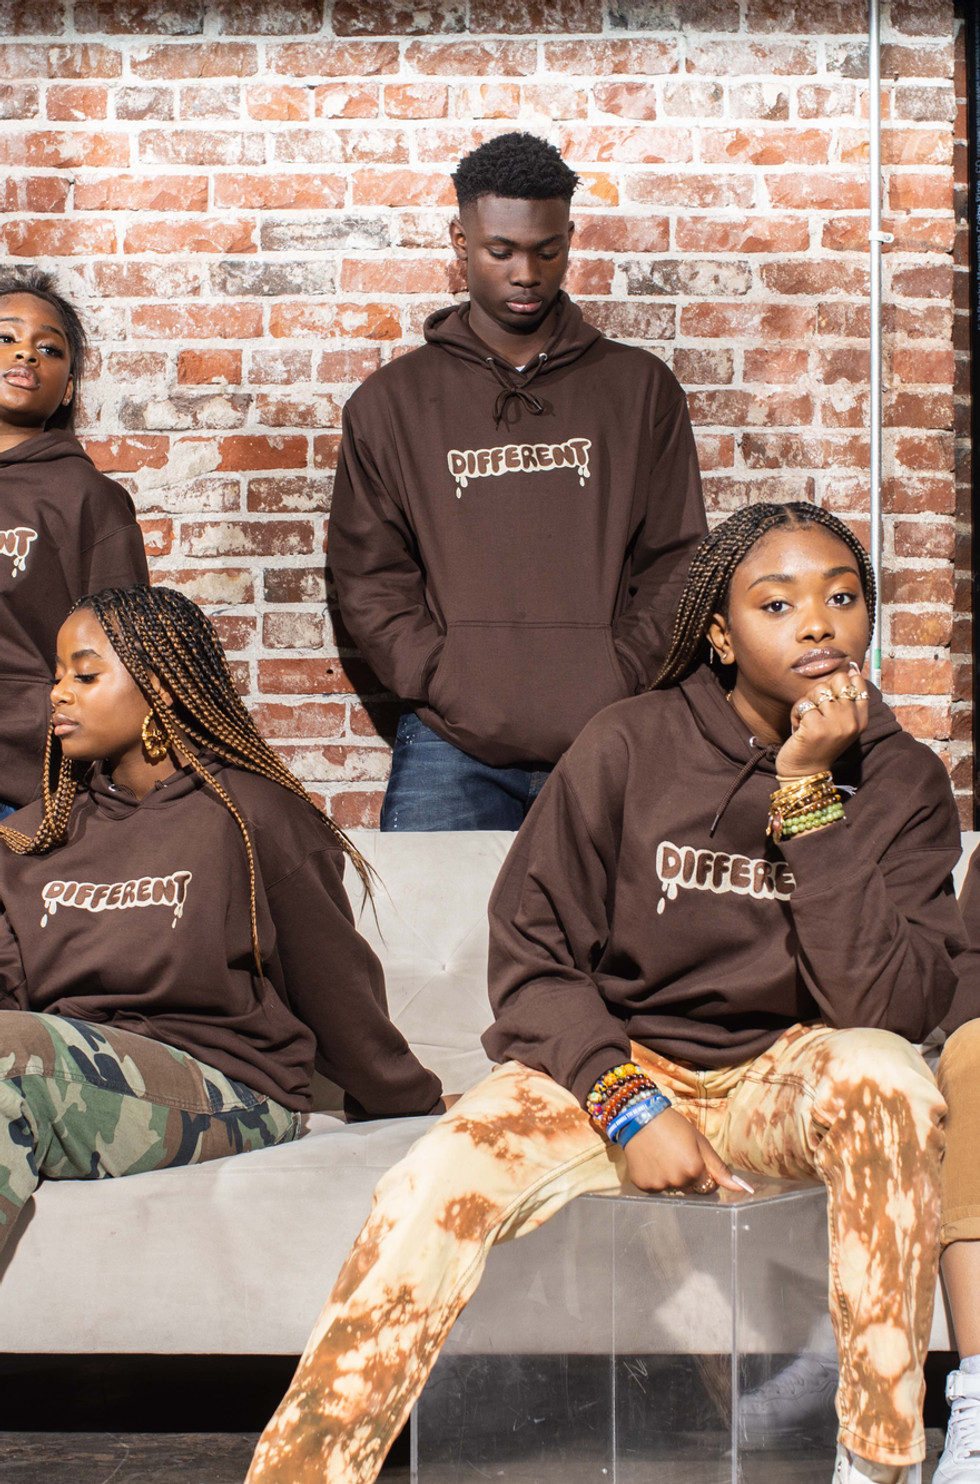 COOKIES HOODIE CAMPAIGN OVER ALL THE REST